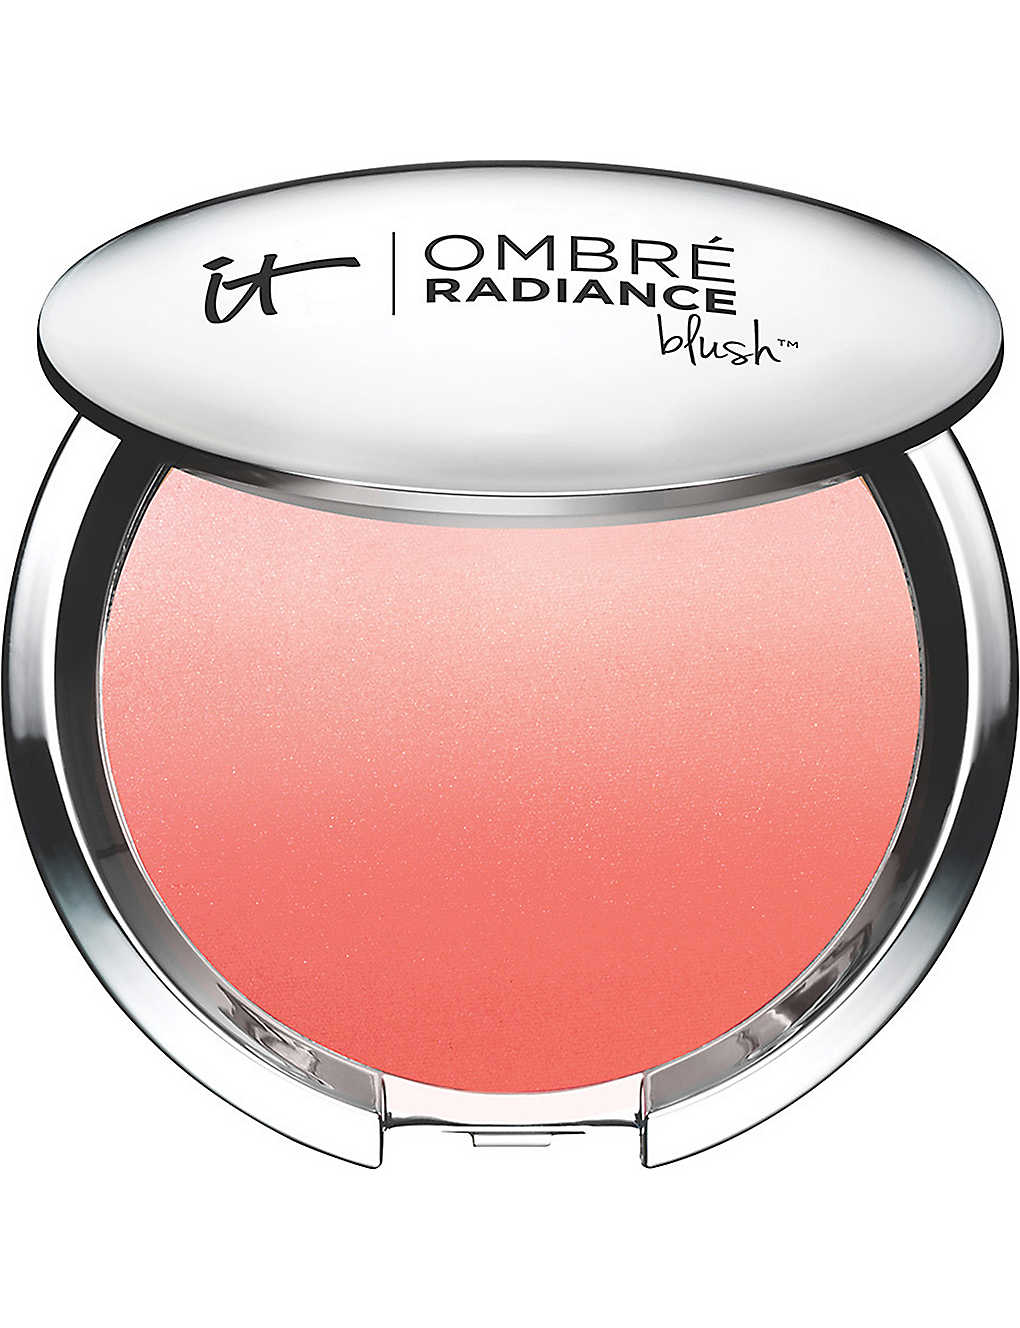 IT COSMETICS: Ombré Radiance Blush